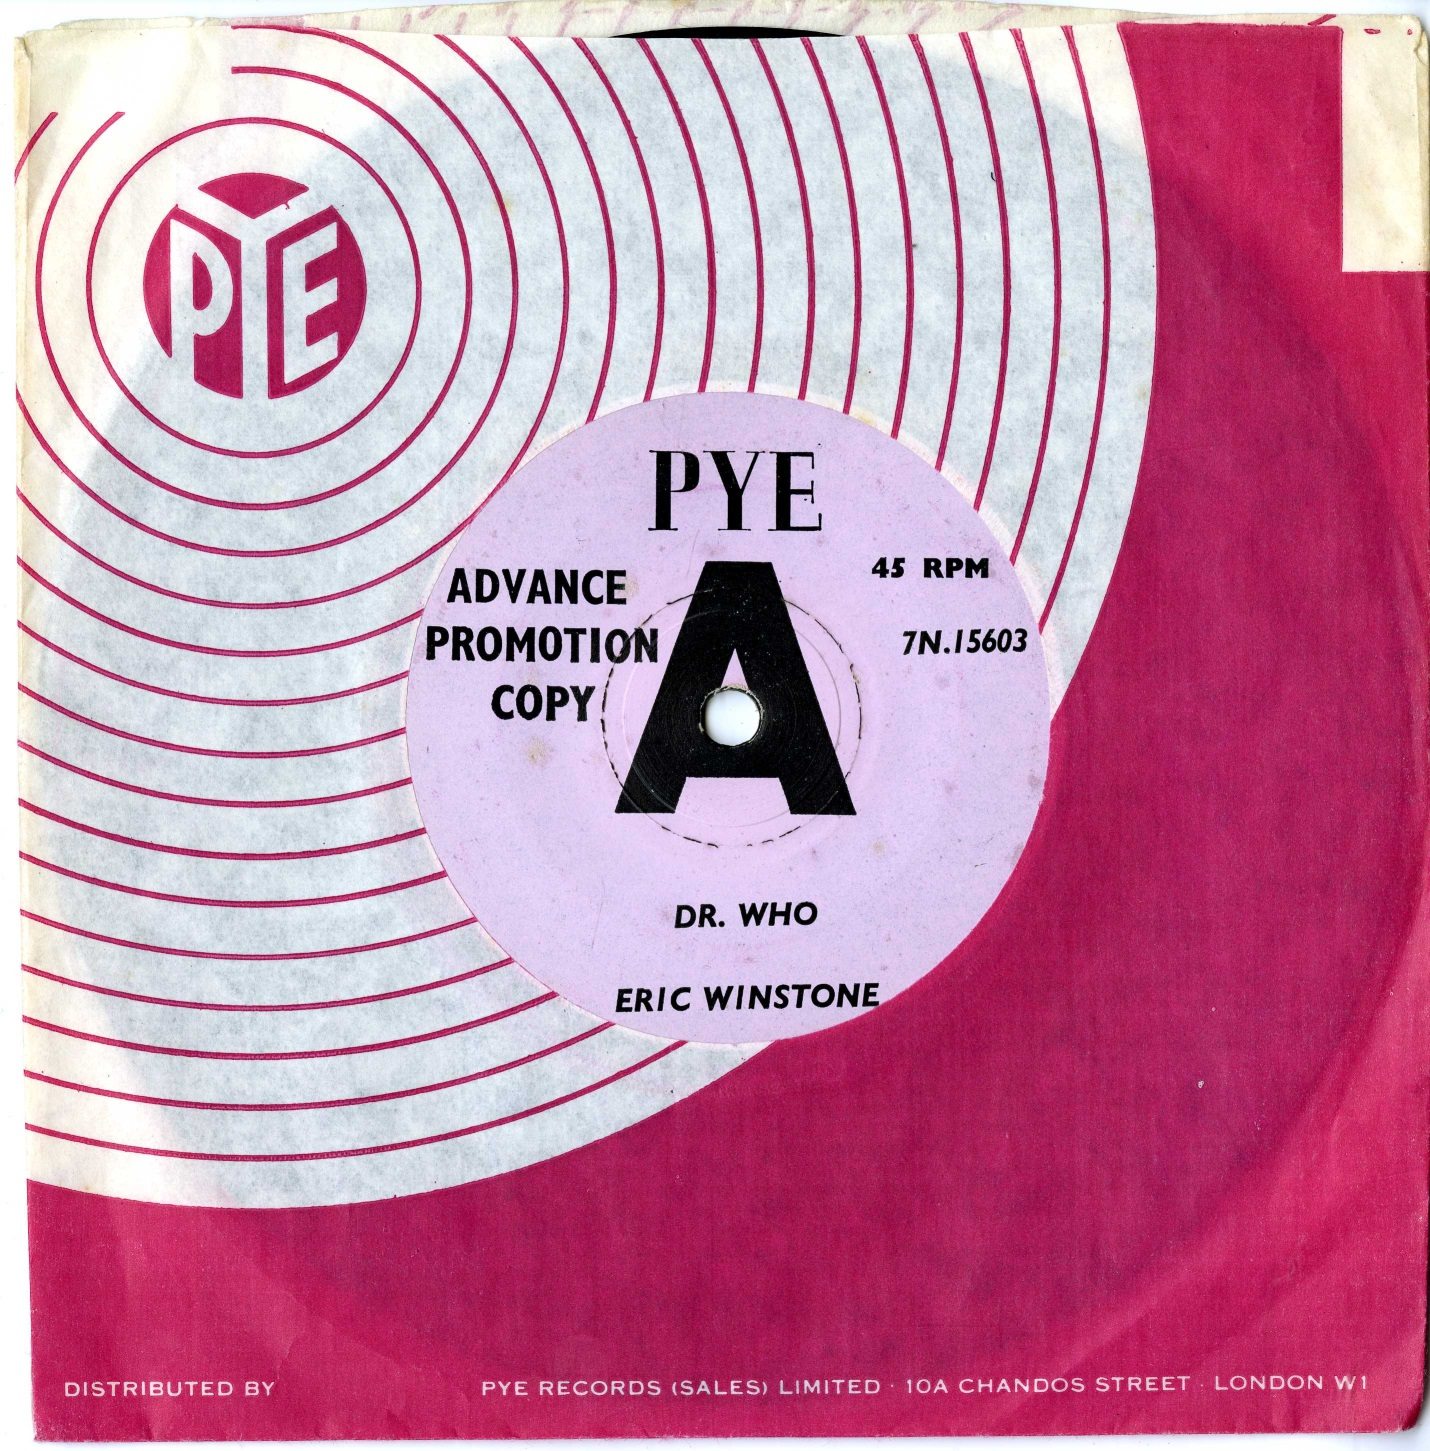 Dr. Who - Eric Winstone and his Orchestra, Pye Advance Promotion Copy